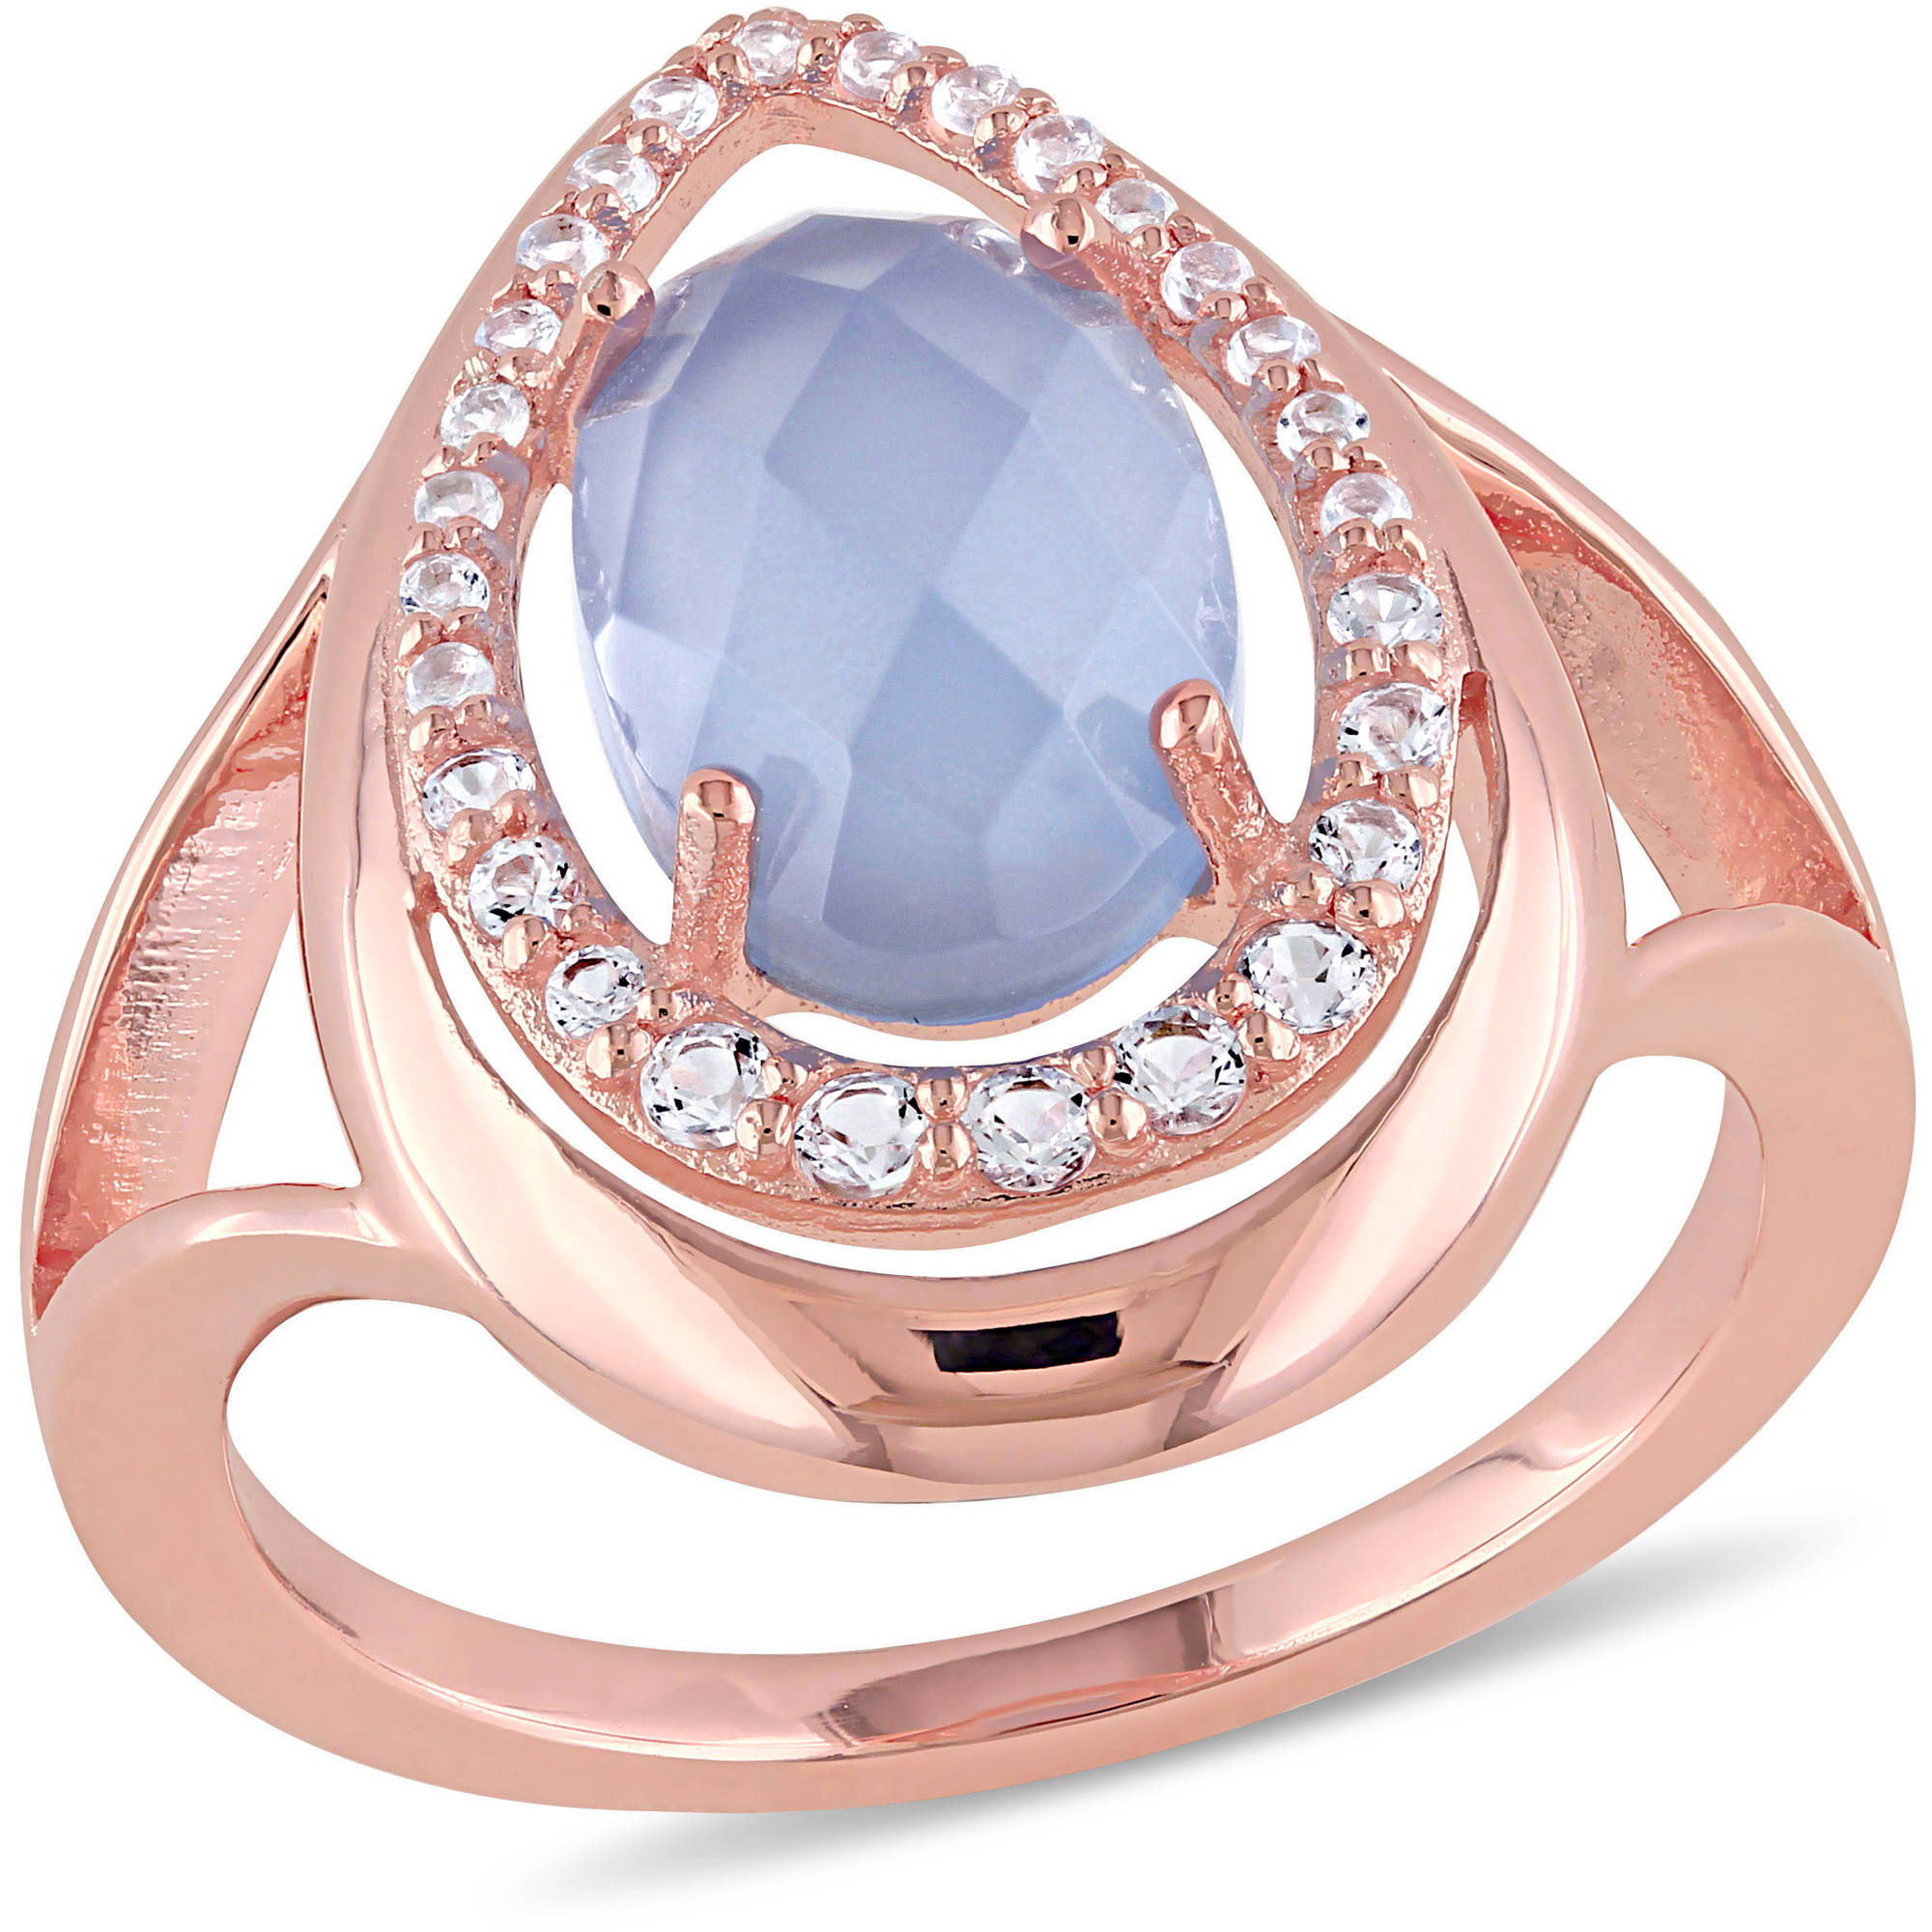 Tangelo 4-3 4 Carat T.G.W. Blue Chalcedony and White Topaz Rose Rhodium-Plated Sterling Silver Halo Cocktail Ring by Tangelo